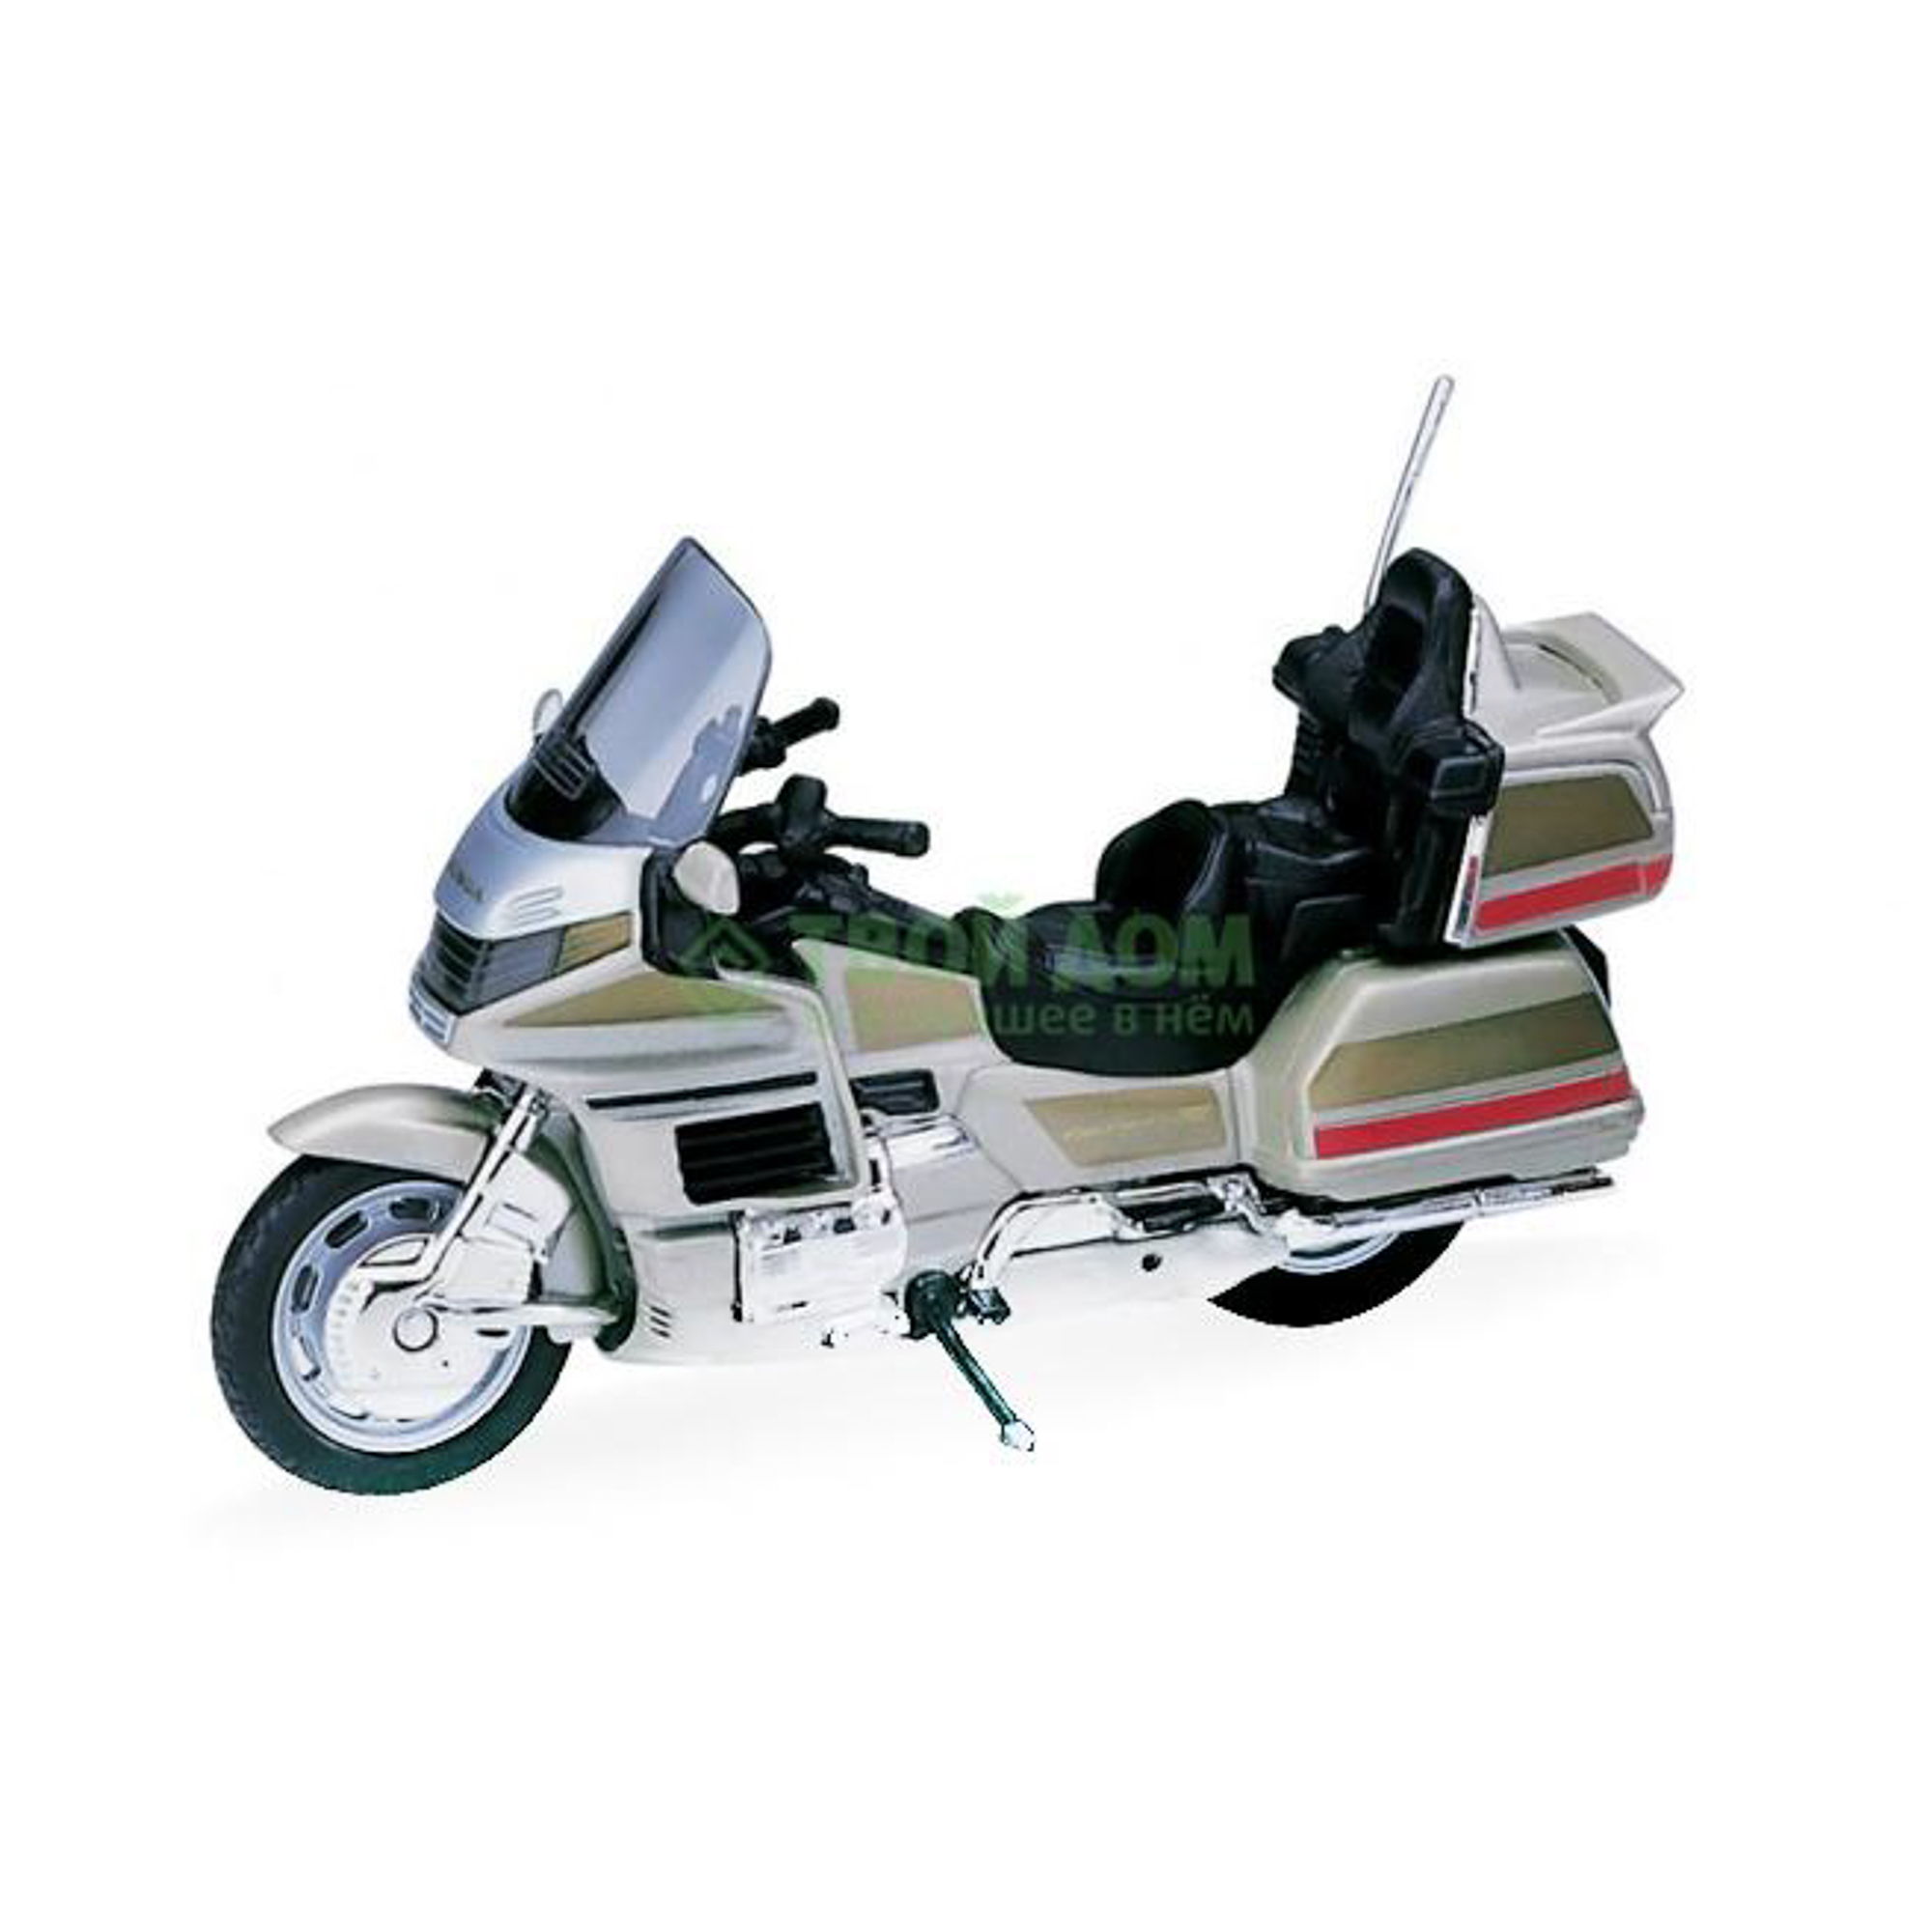 Мотоциклы Welly 1:18 Motos Honda Gold Wing (12148)